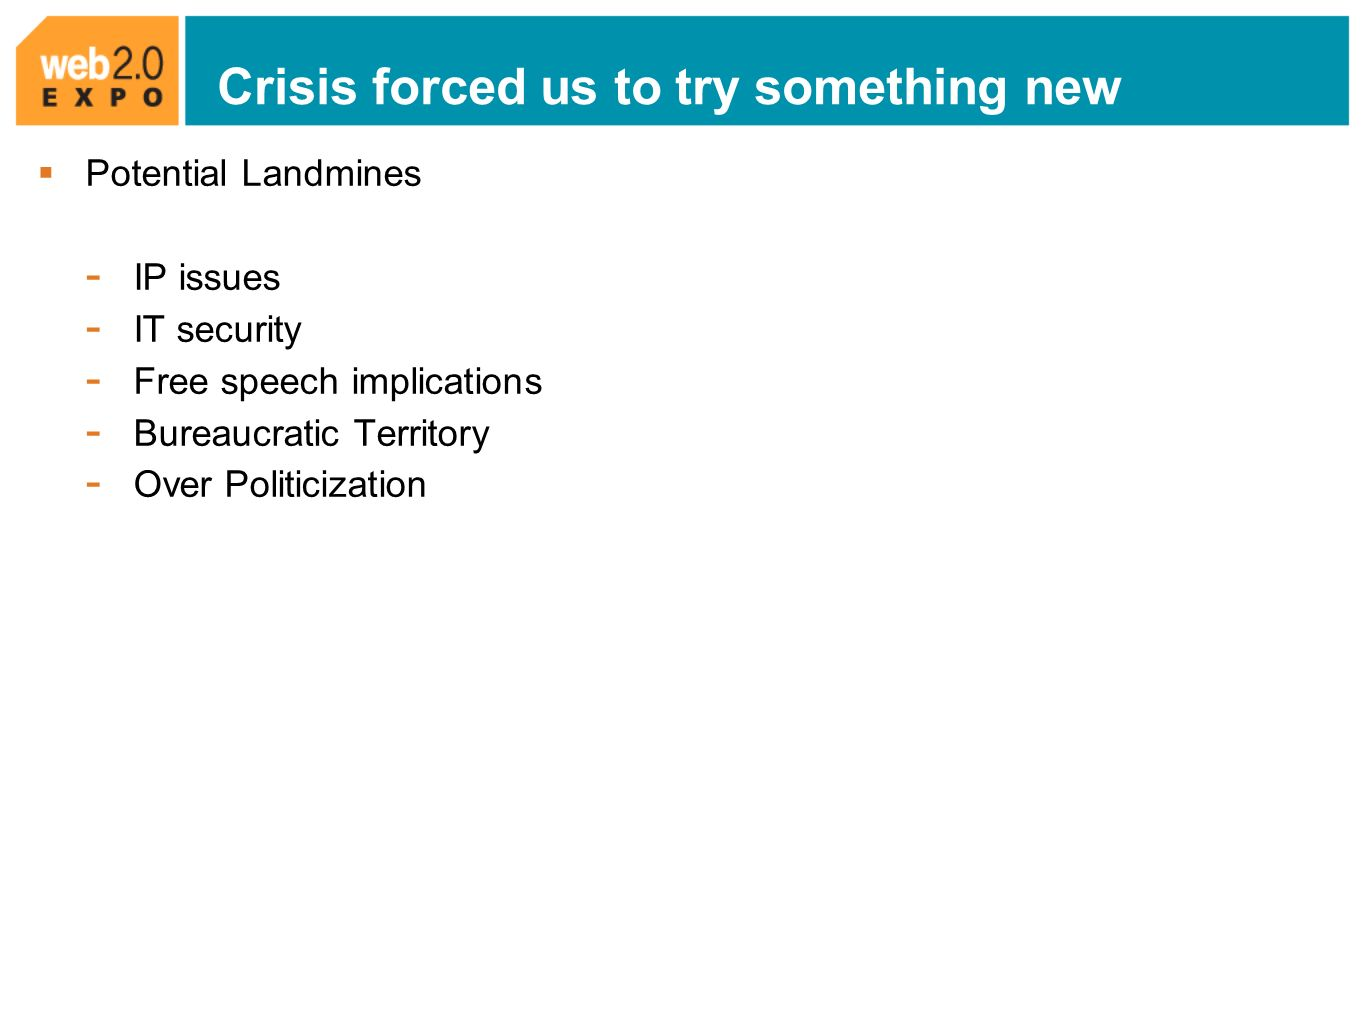 Crisis forced us to try something new Potential Landmines - IP issues - IT security - Free speech implications - Bureaucratic Territory - Over Politicization